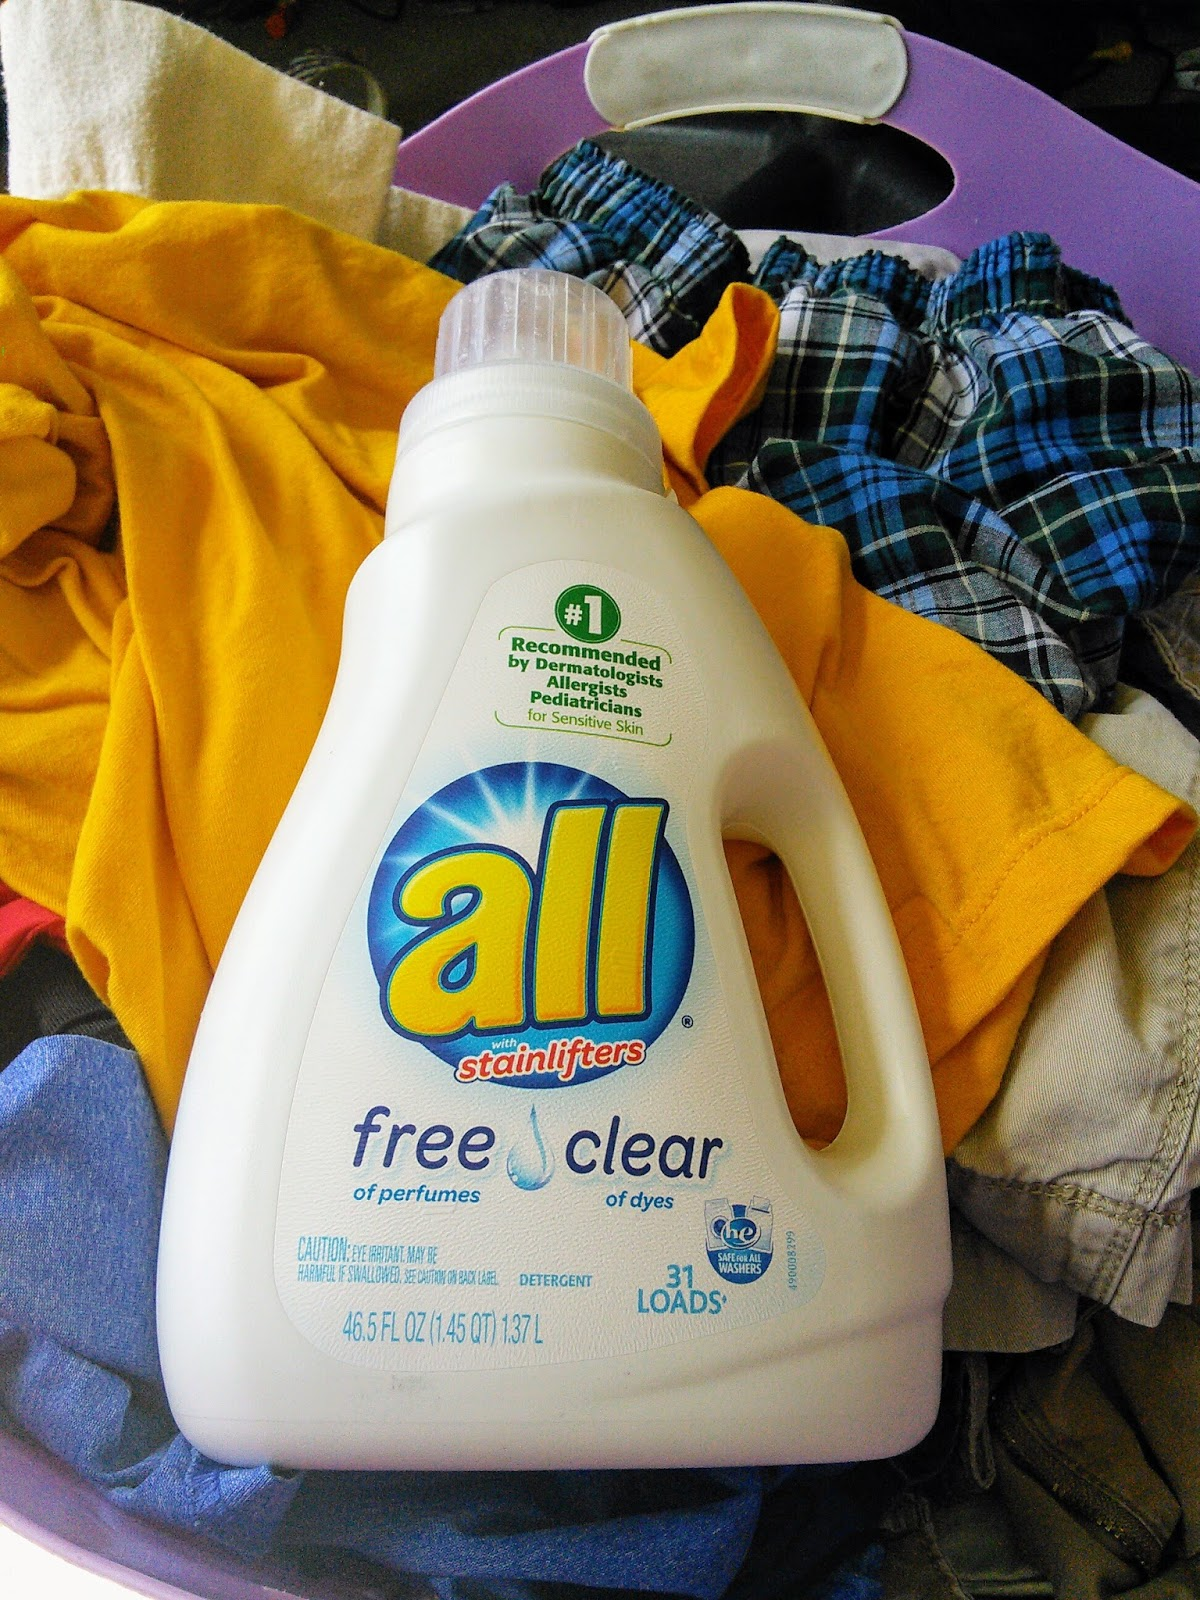 Mom Knows Best : Laundry Care For Messy Boys With Sensitive Skin